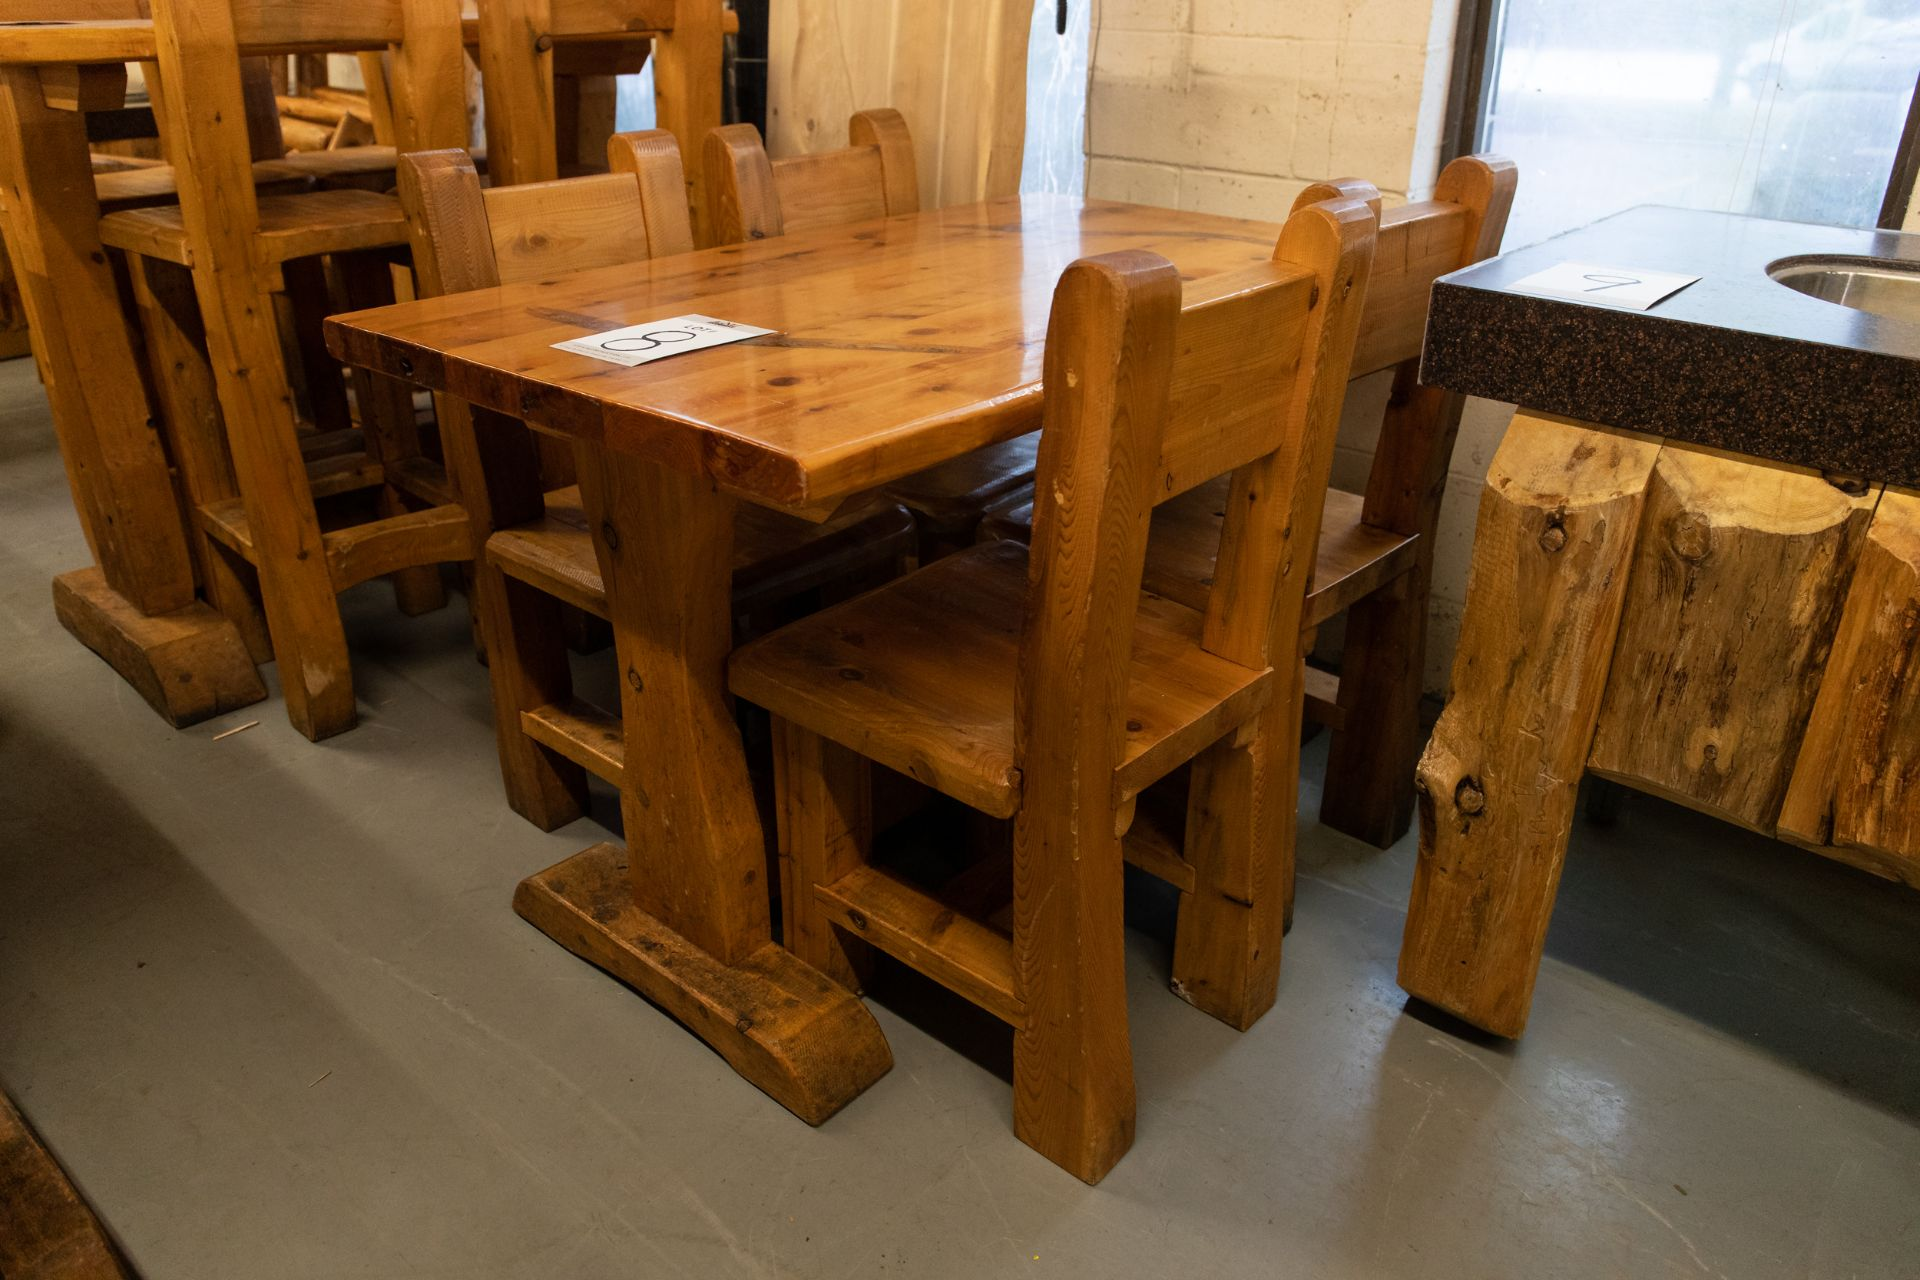 4' WHITE PINE DINING TABLE WITH 4 CHAIRS - L-48'' W-28'' H- 30'' - Image 4 of 4